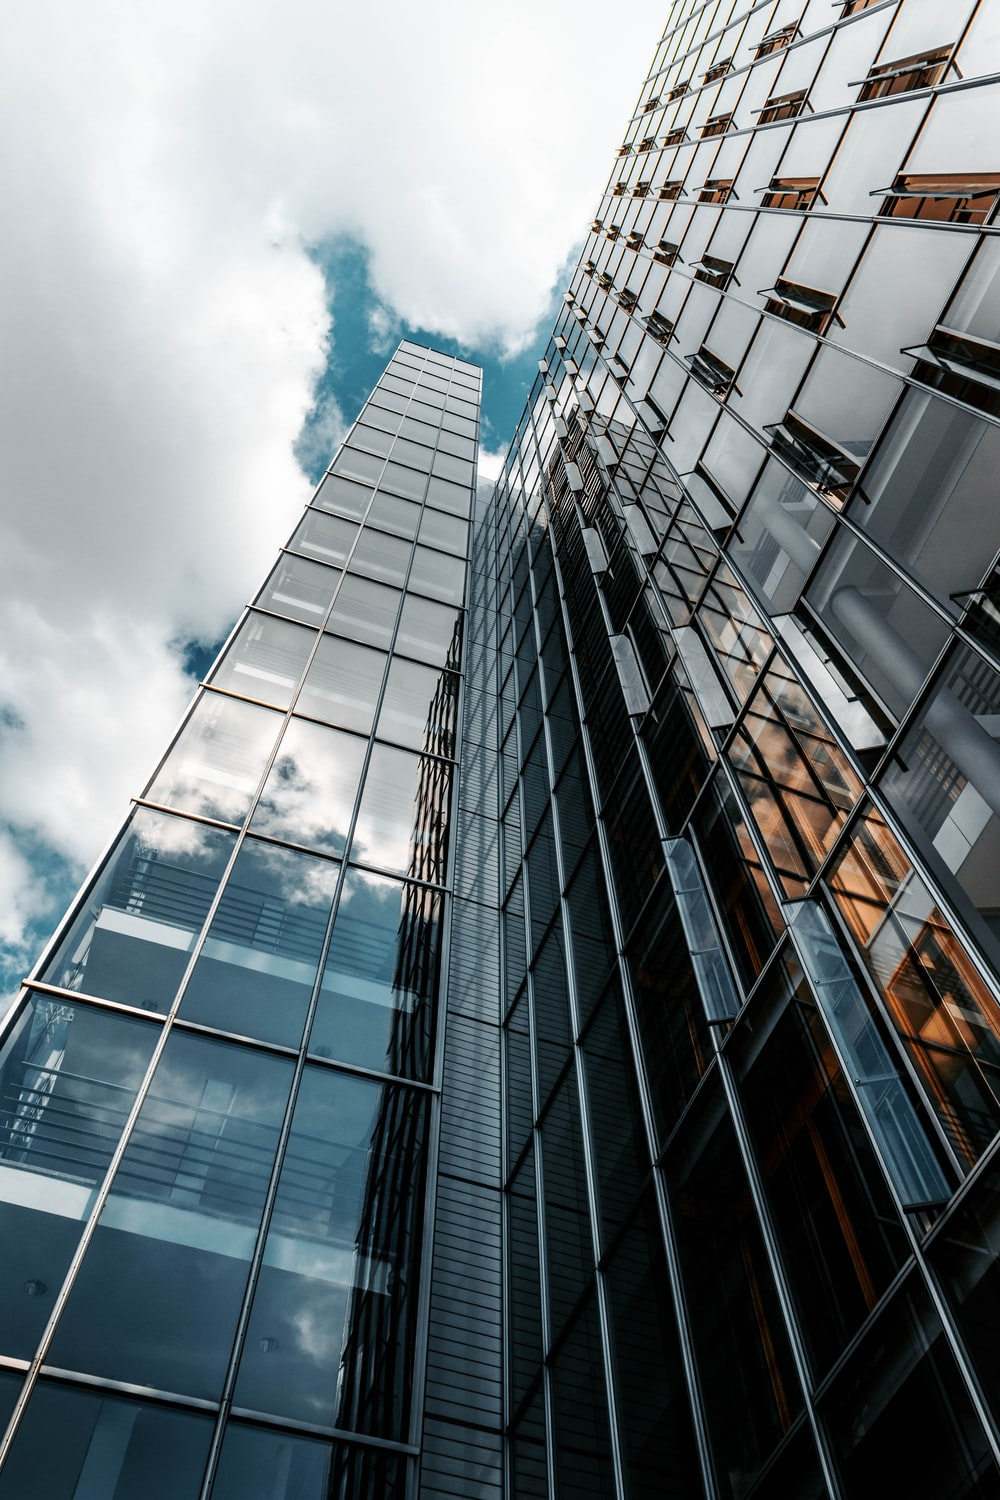 low angle photography of glass building under cloudy sky